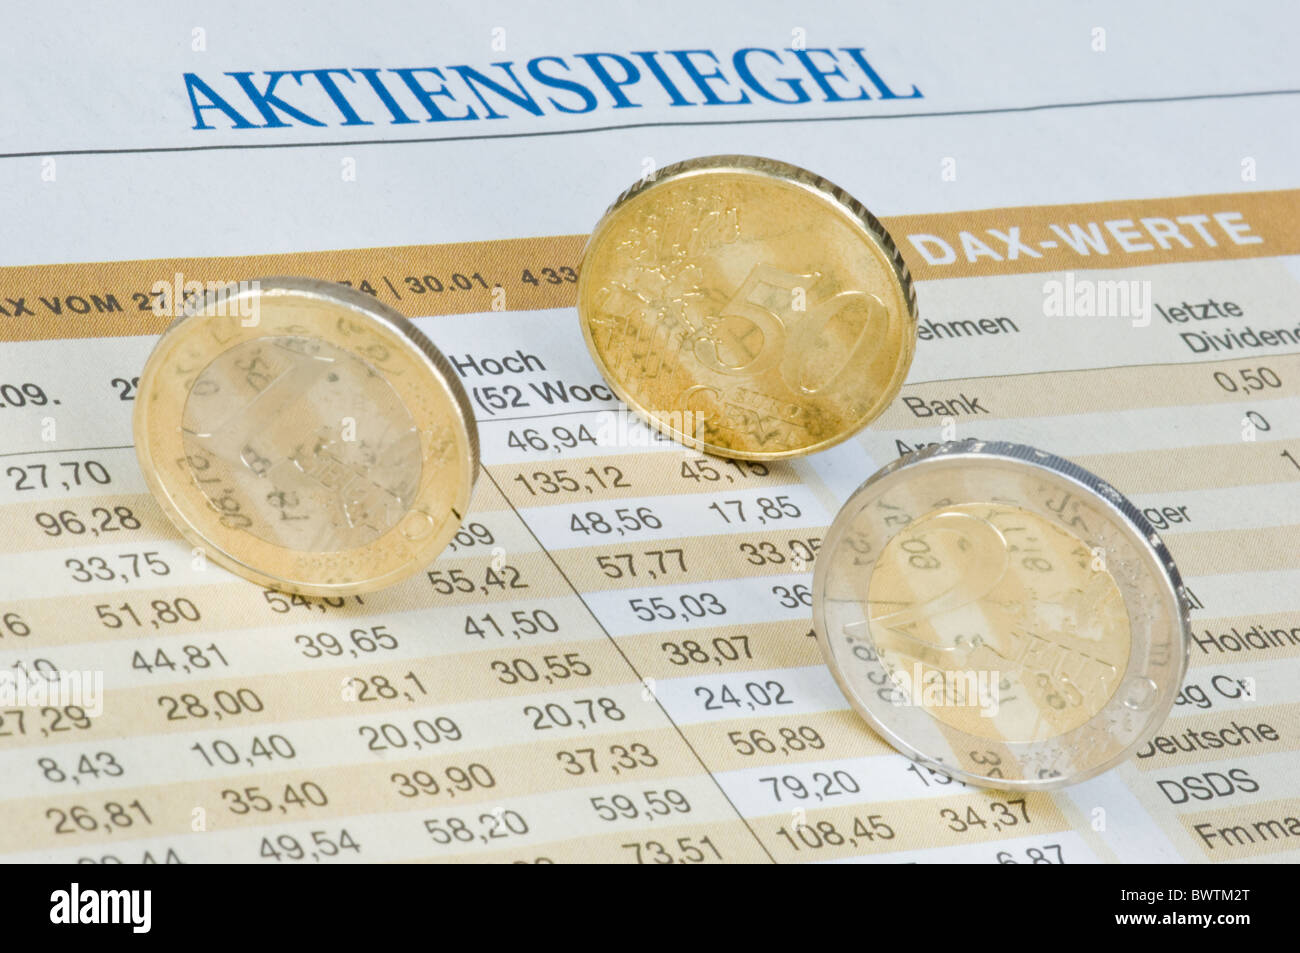 Euro coins on course table - Stock Image